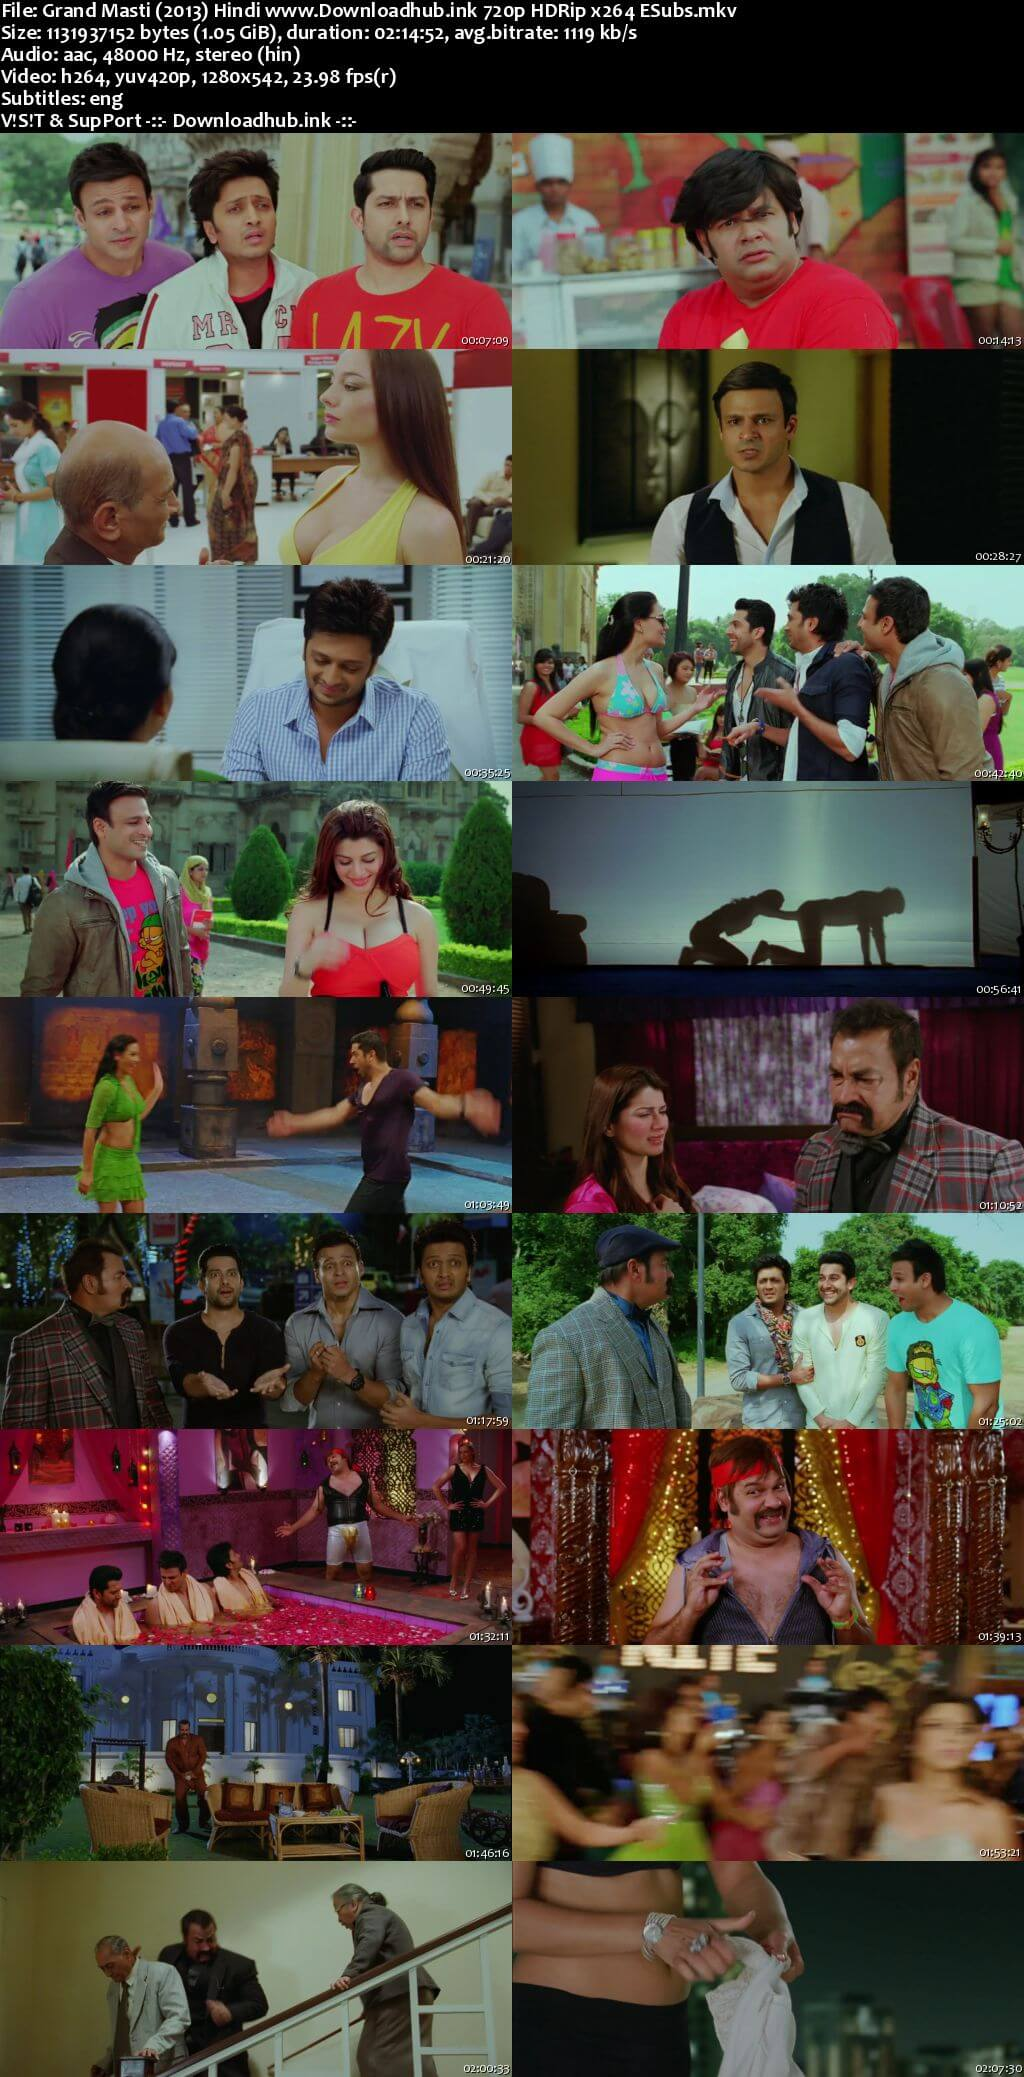 Grand Masti 2013 Hindi 720p HDRip ESubs